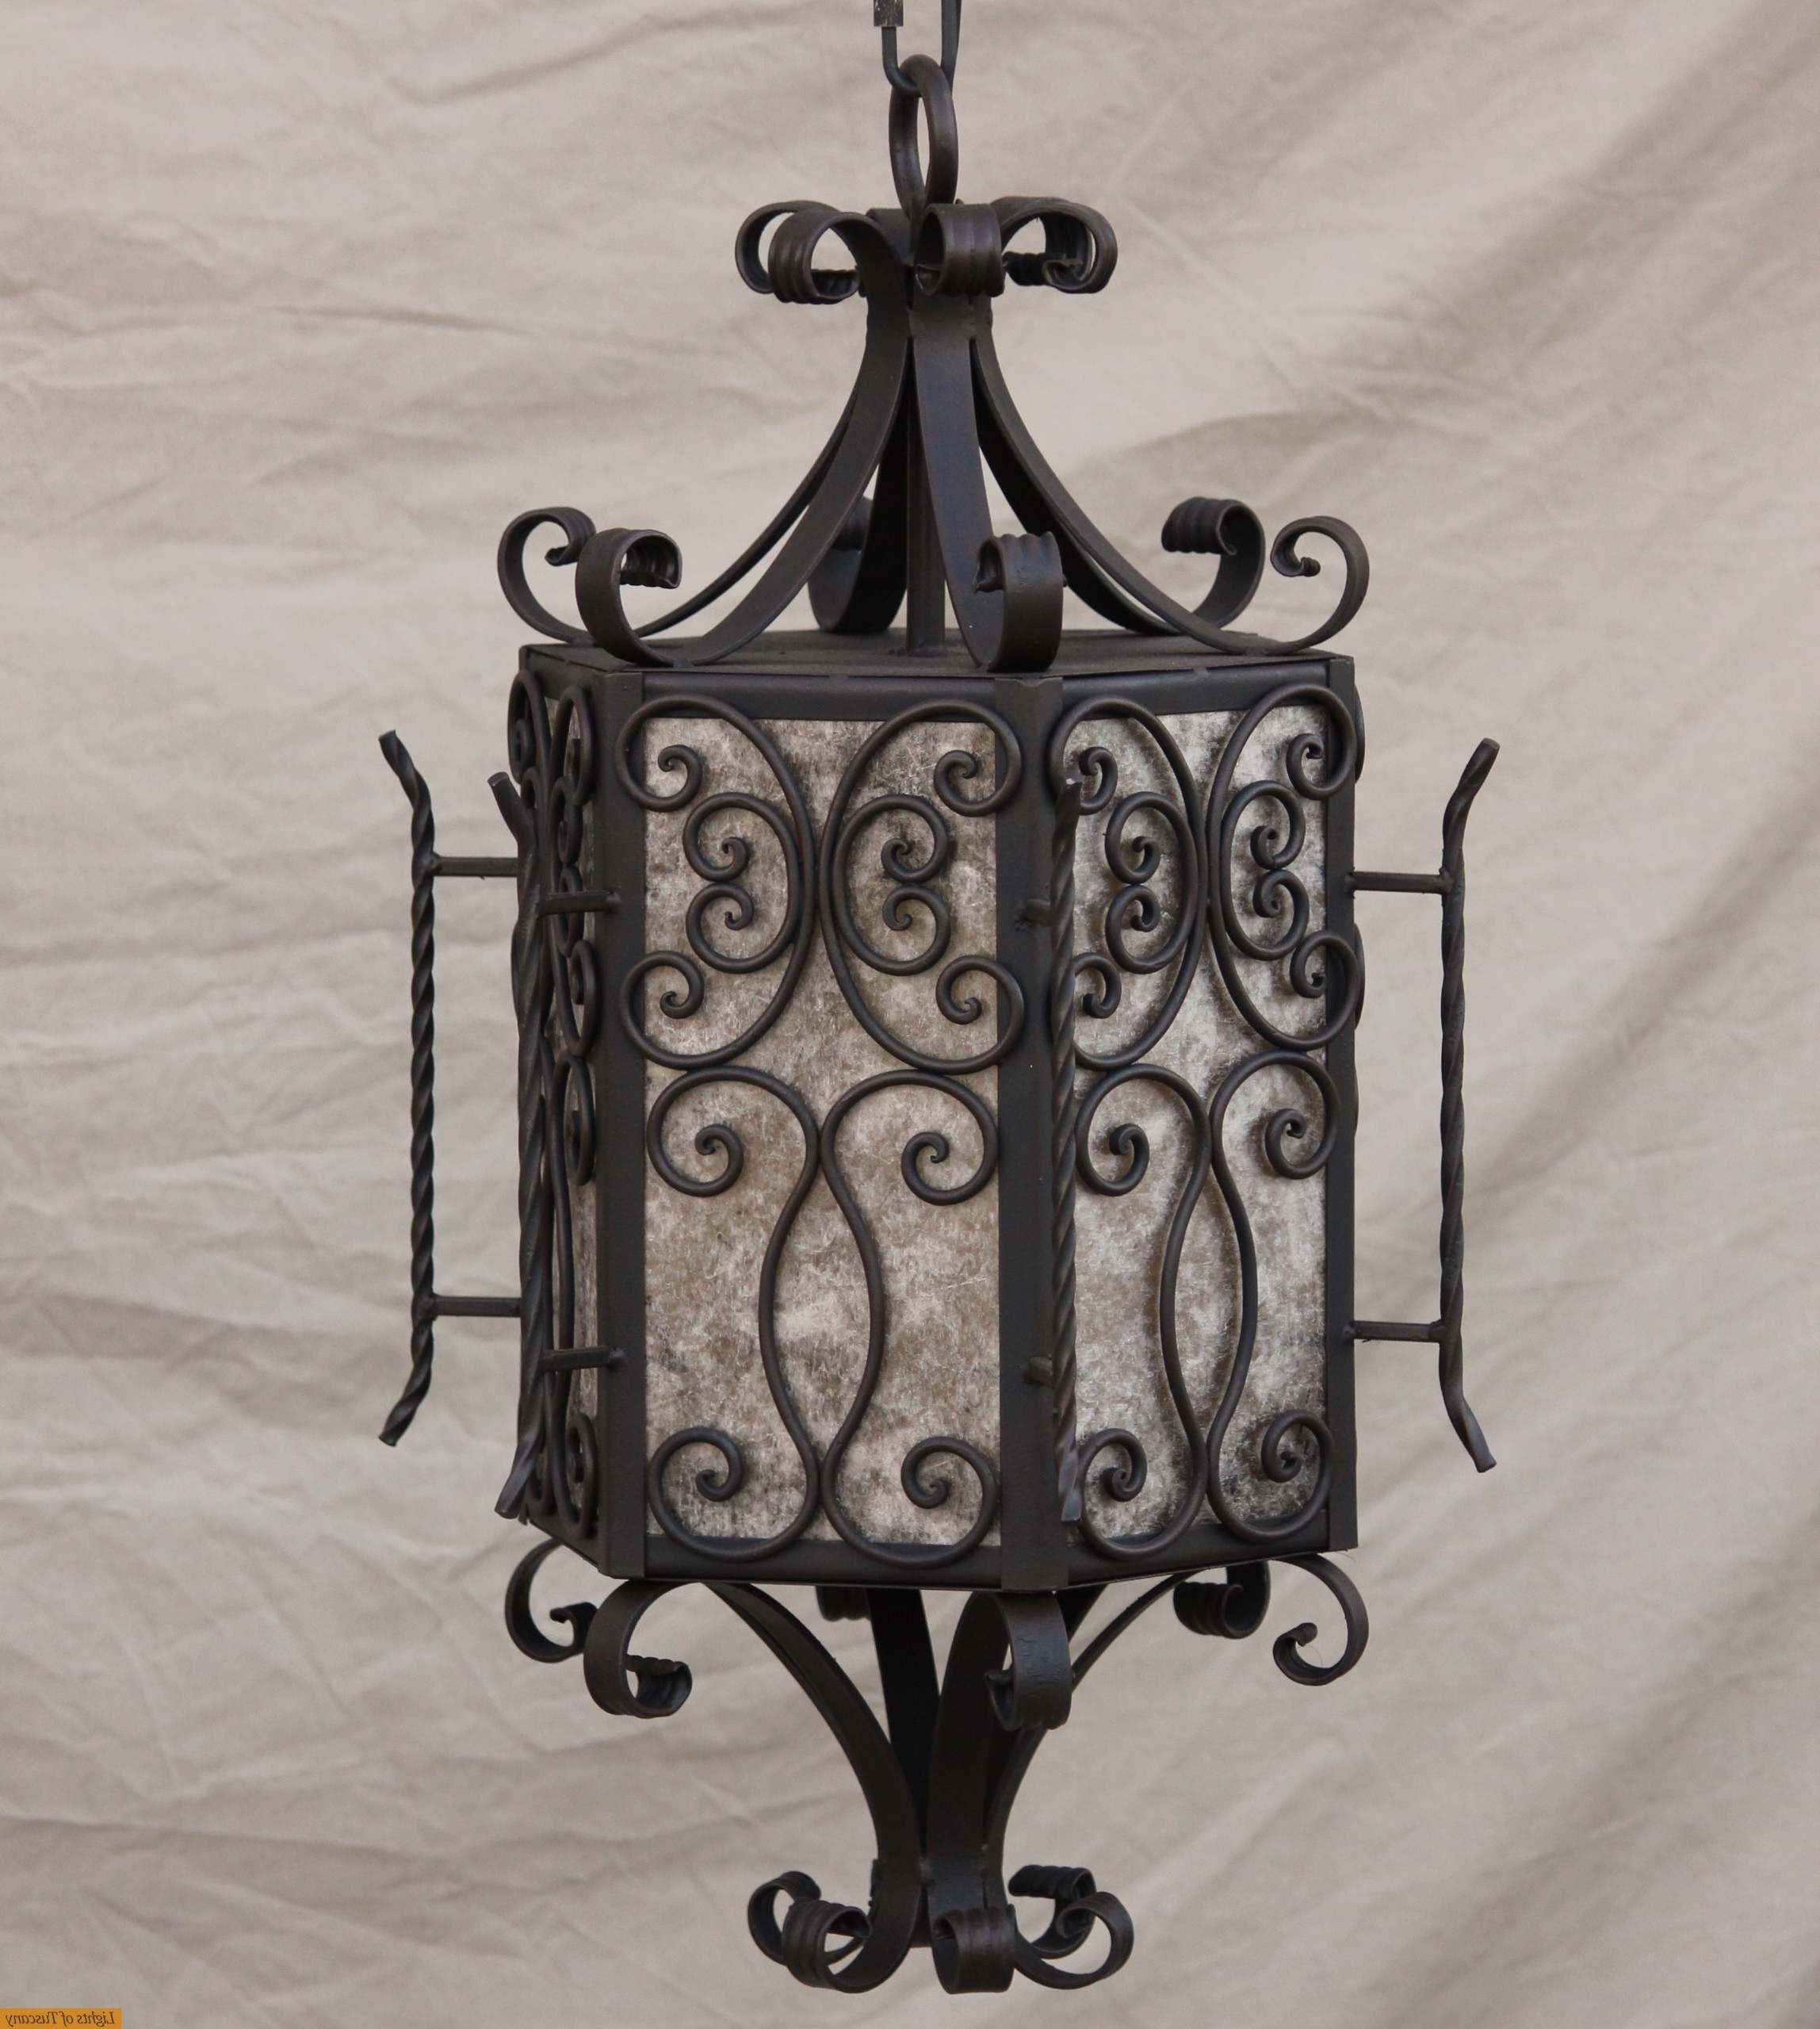 Trendy Lights Of Tuscany 2055 1 – Outdoor/exterior Hanging Lighting Inside Mexican Outdoor Hanging Lights (View 13 of 20)